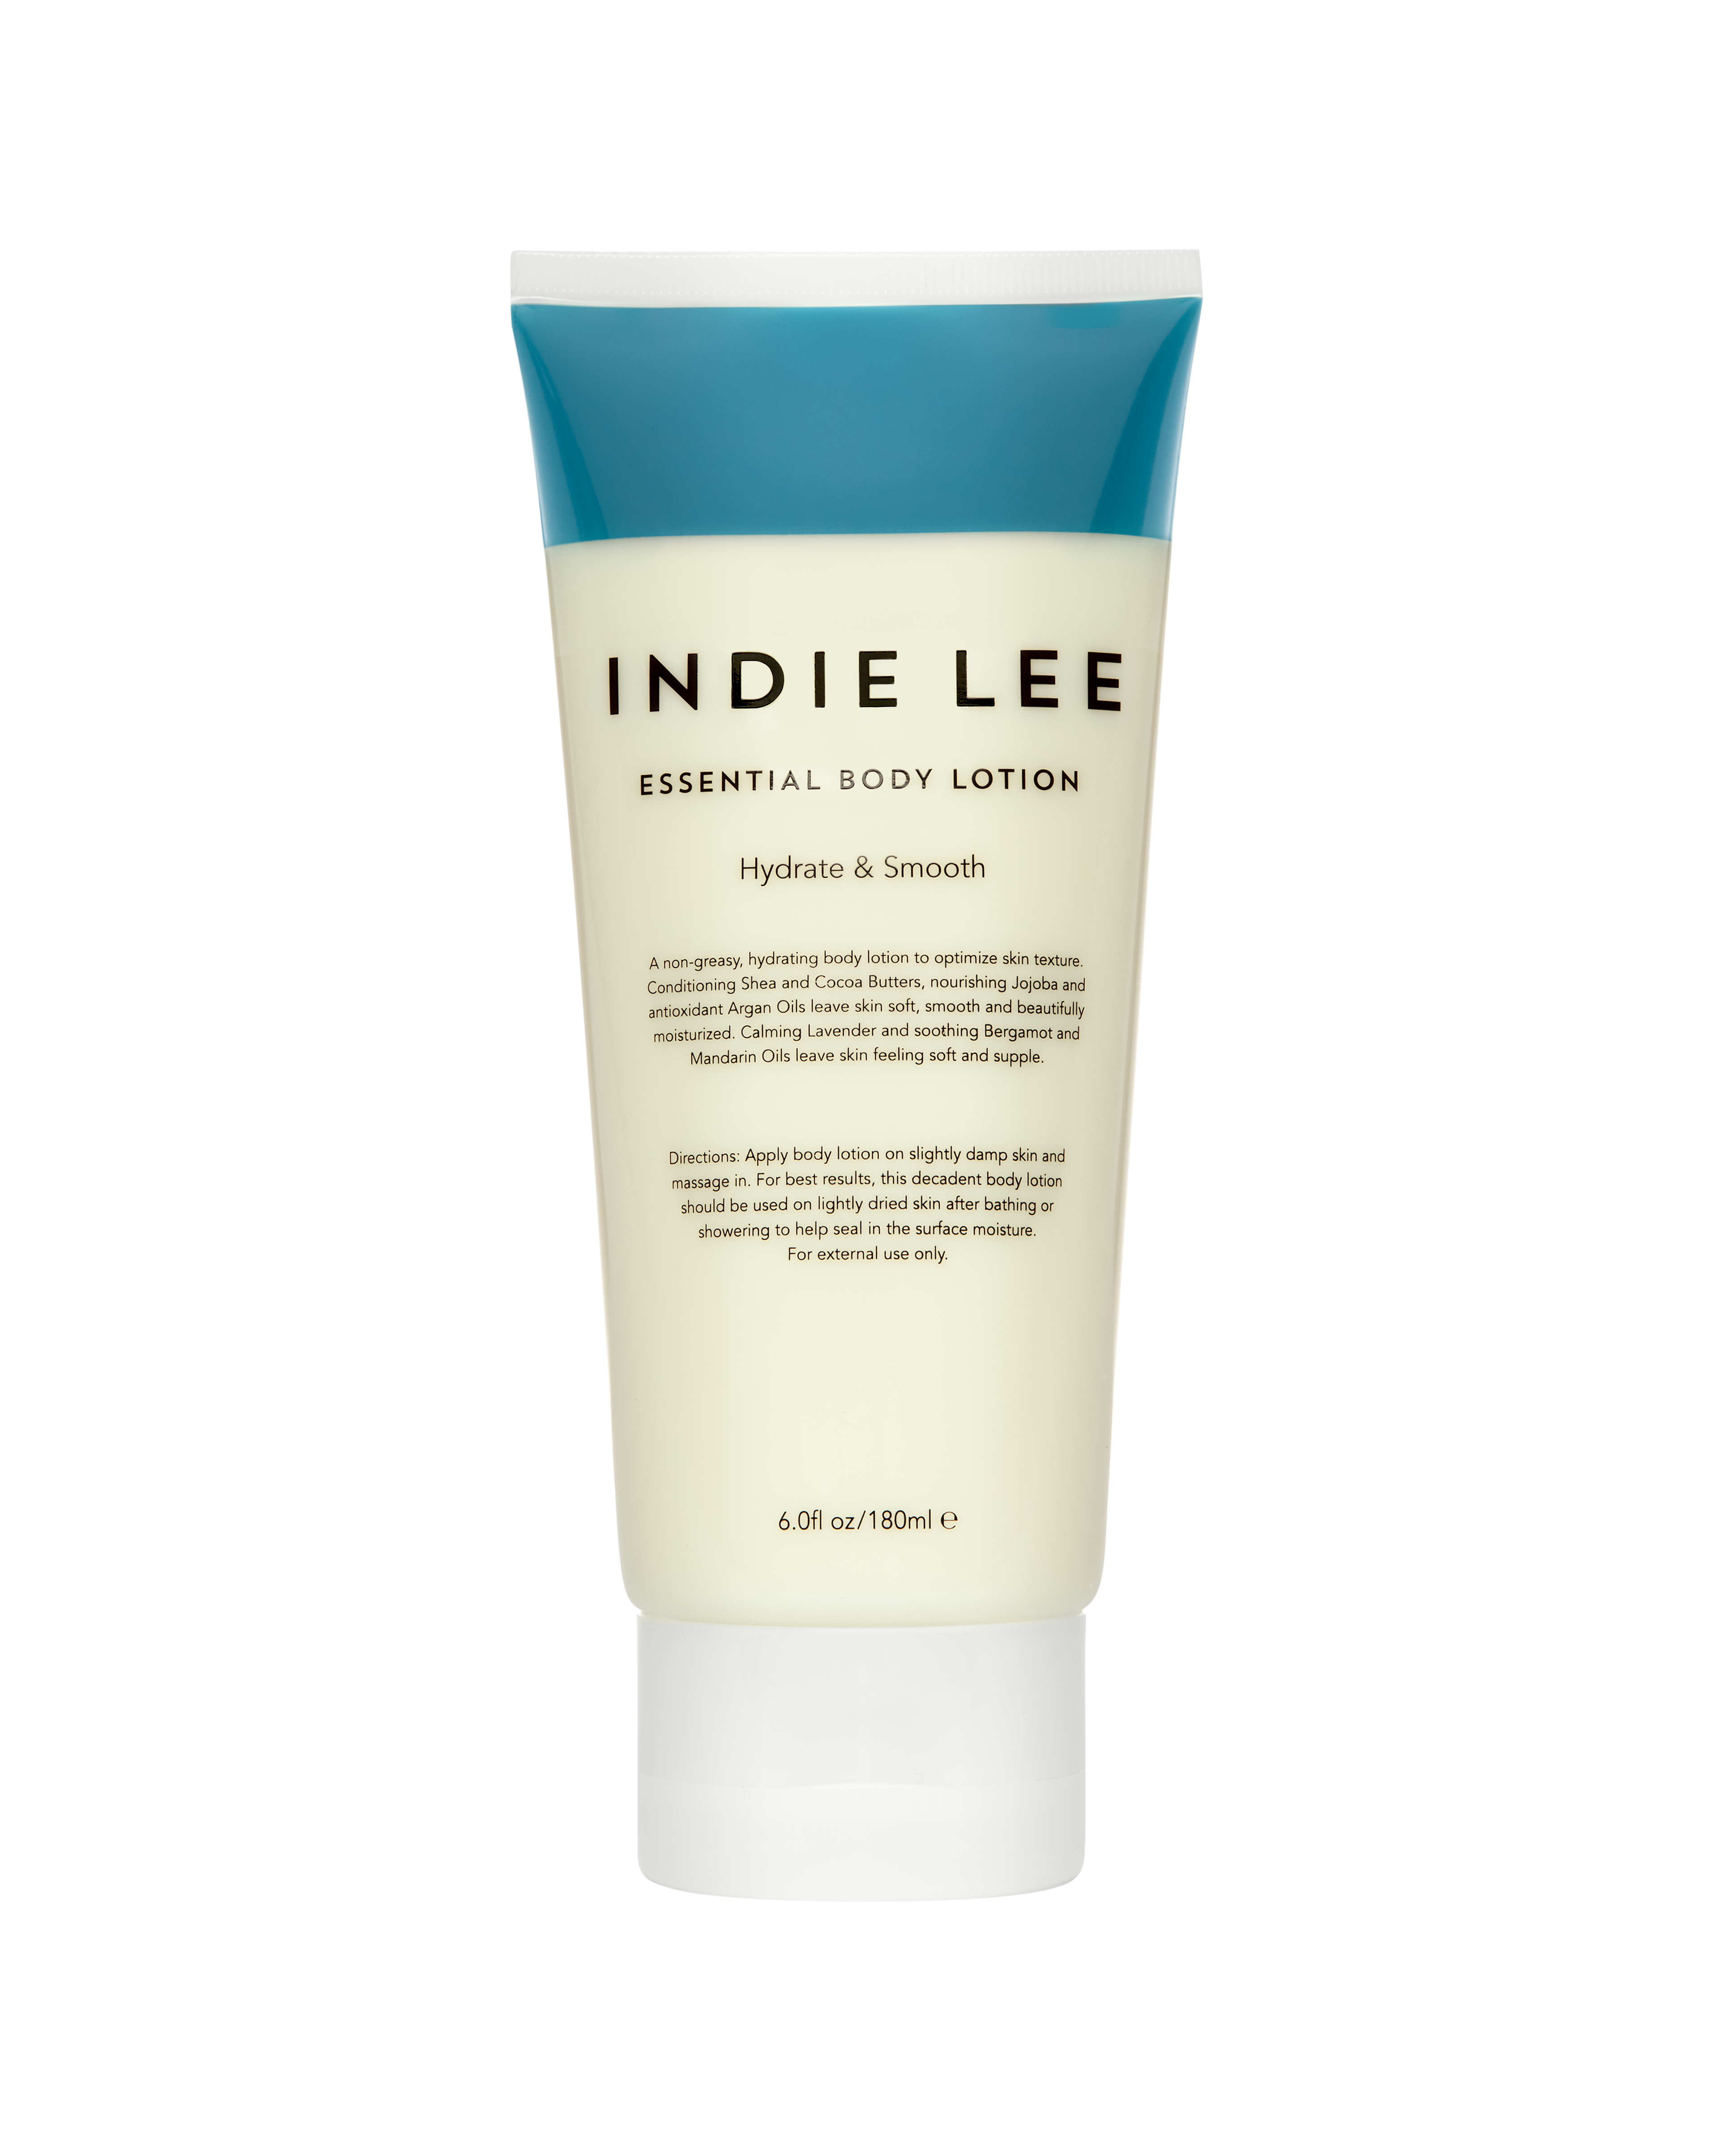 Indie Lee | Skin Care Grounded In Nature Supported Through Science